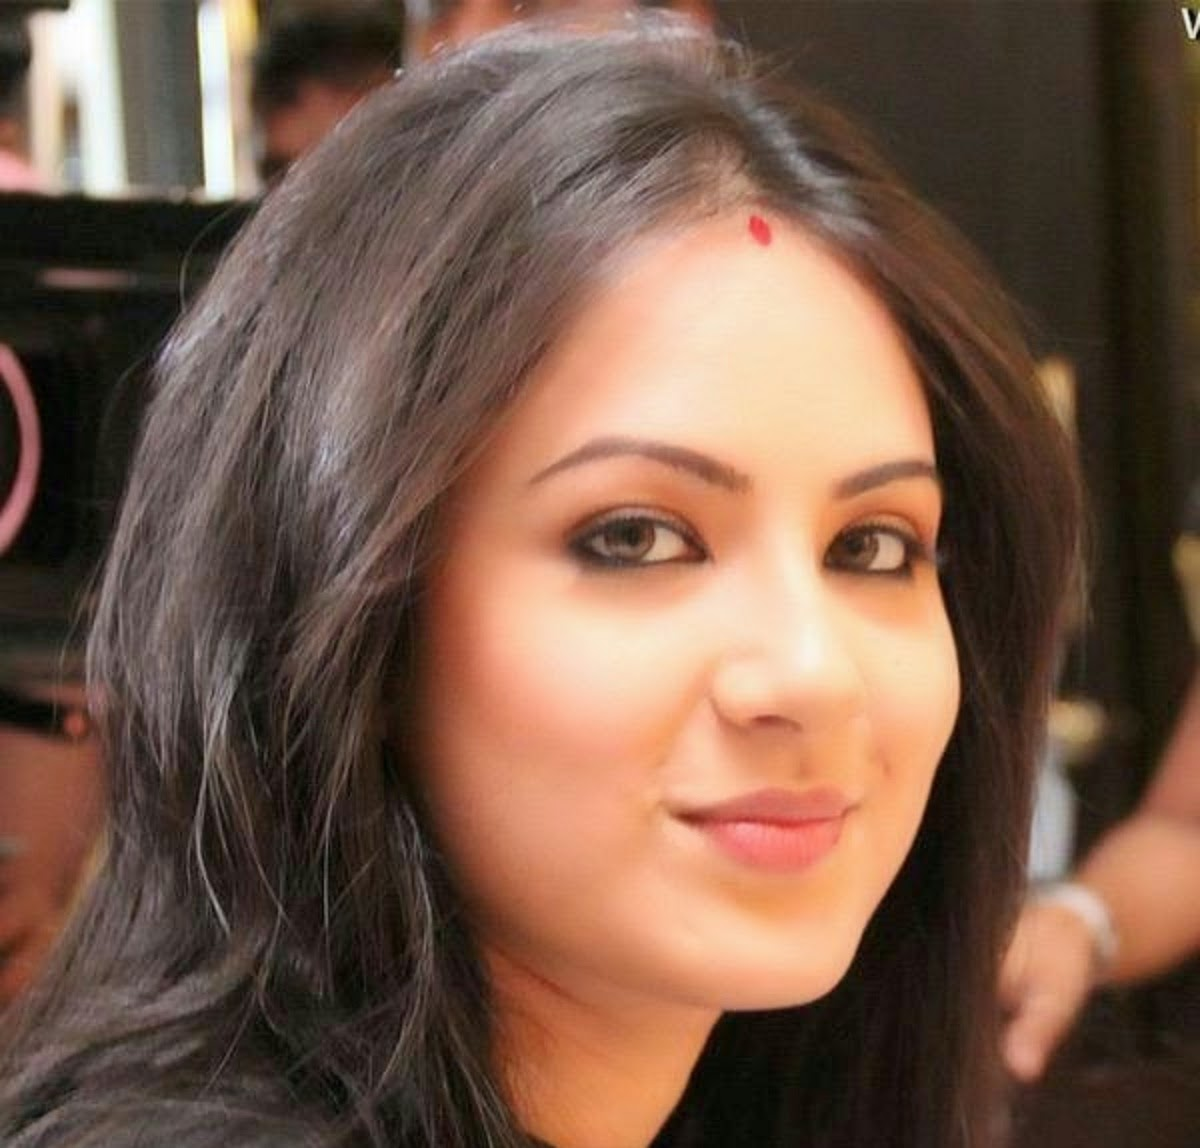 Pooja Bose - EVERY STARS HD WALLPAPERS FREE DOWNLOAD: Pooja Bose HD Wallpapers ...